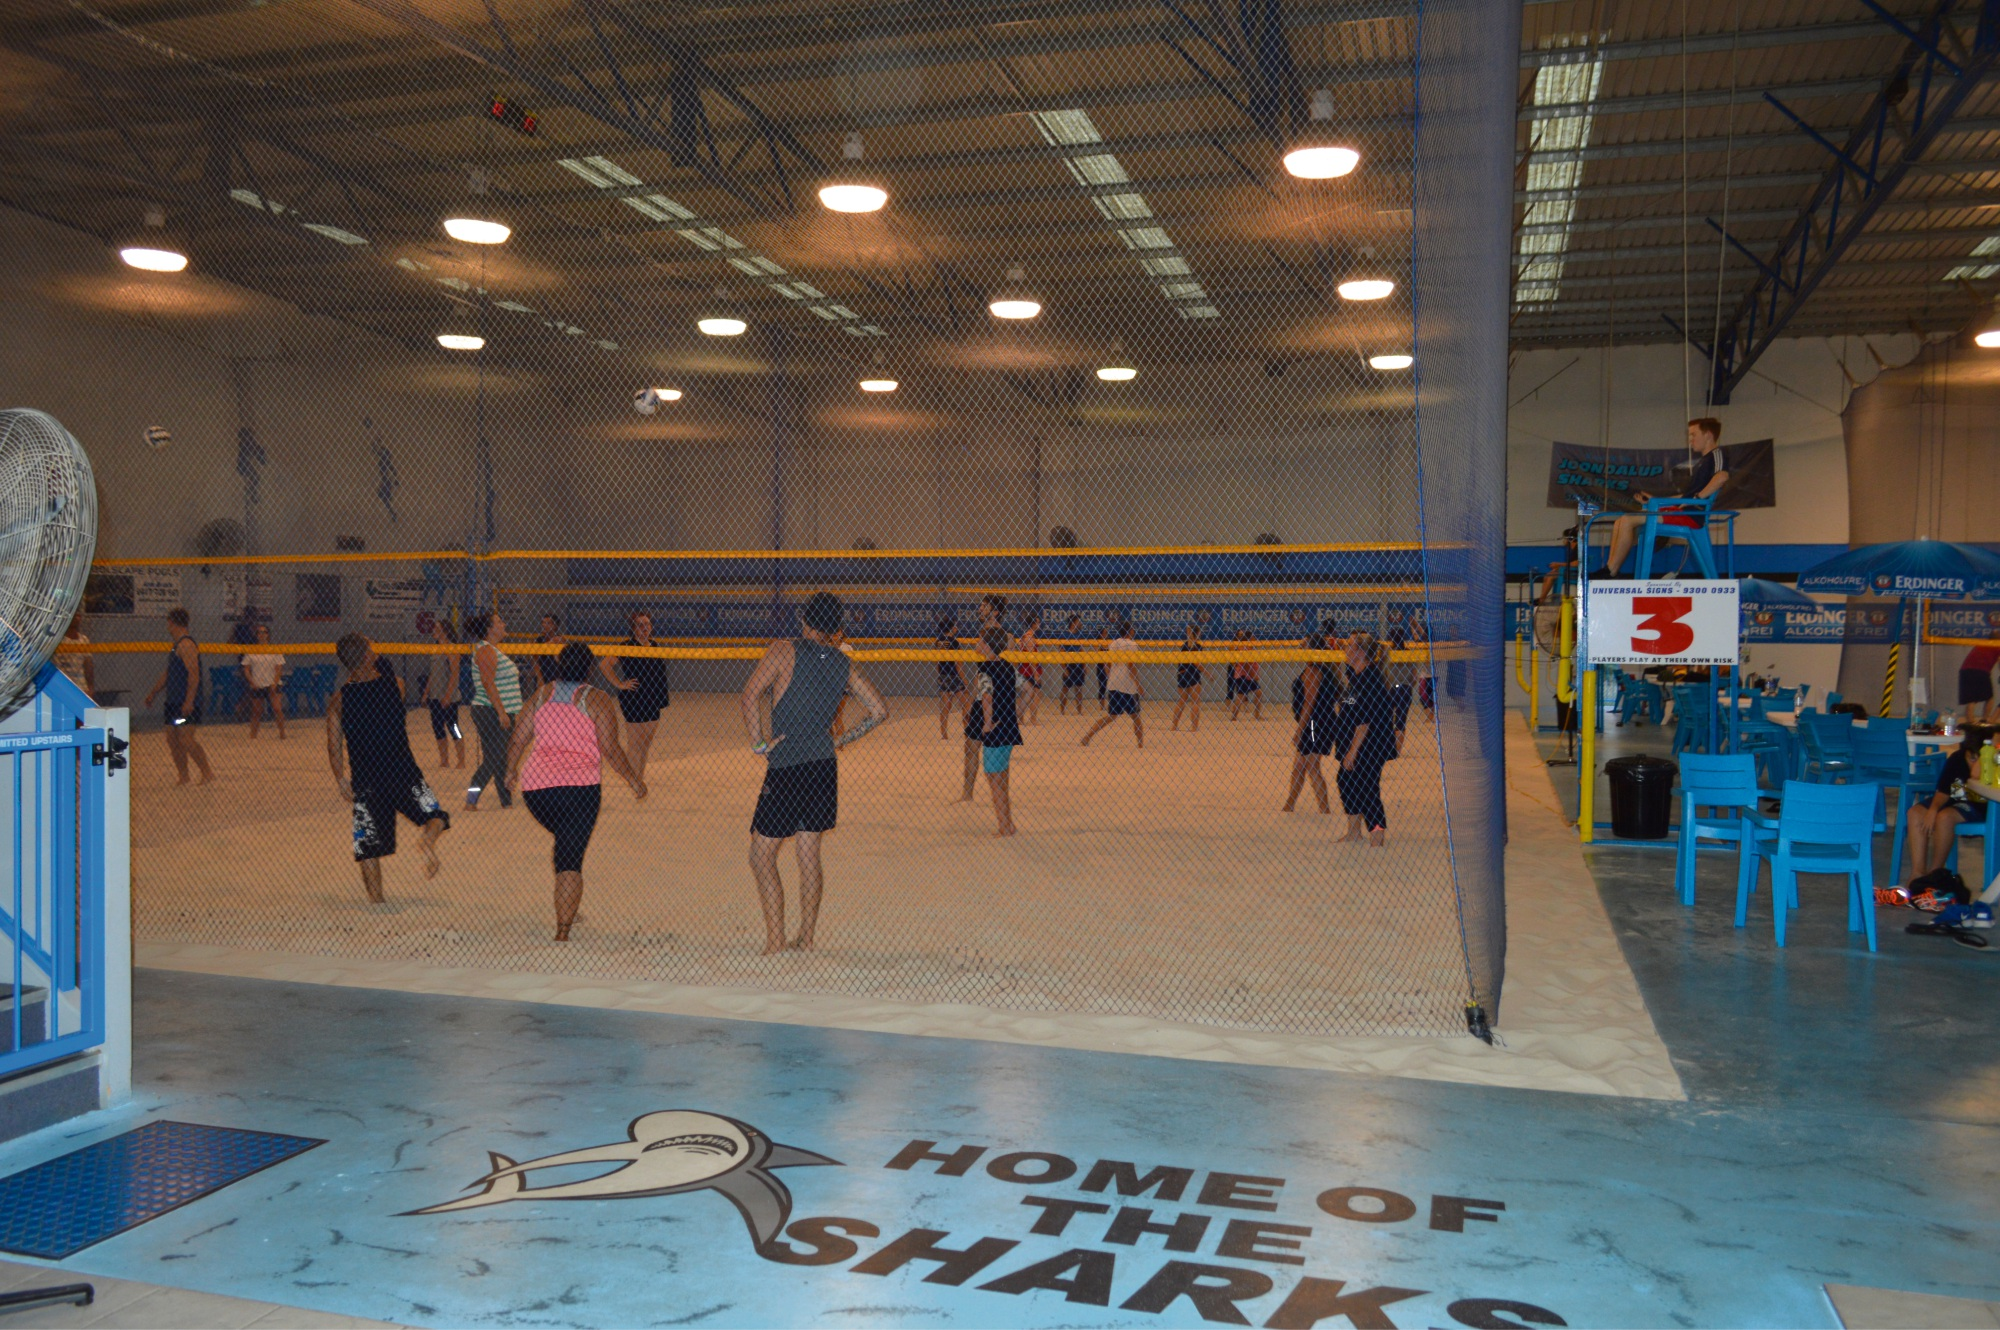 Joondalup is hosting round four of the Indoor Beach Volleyball Super League.